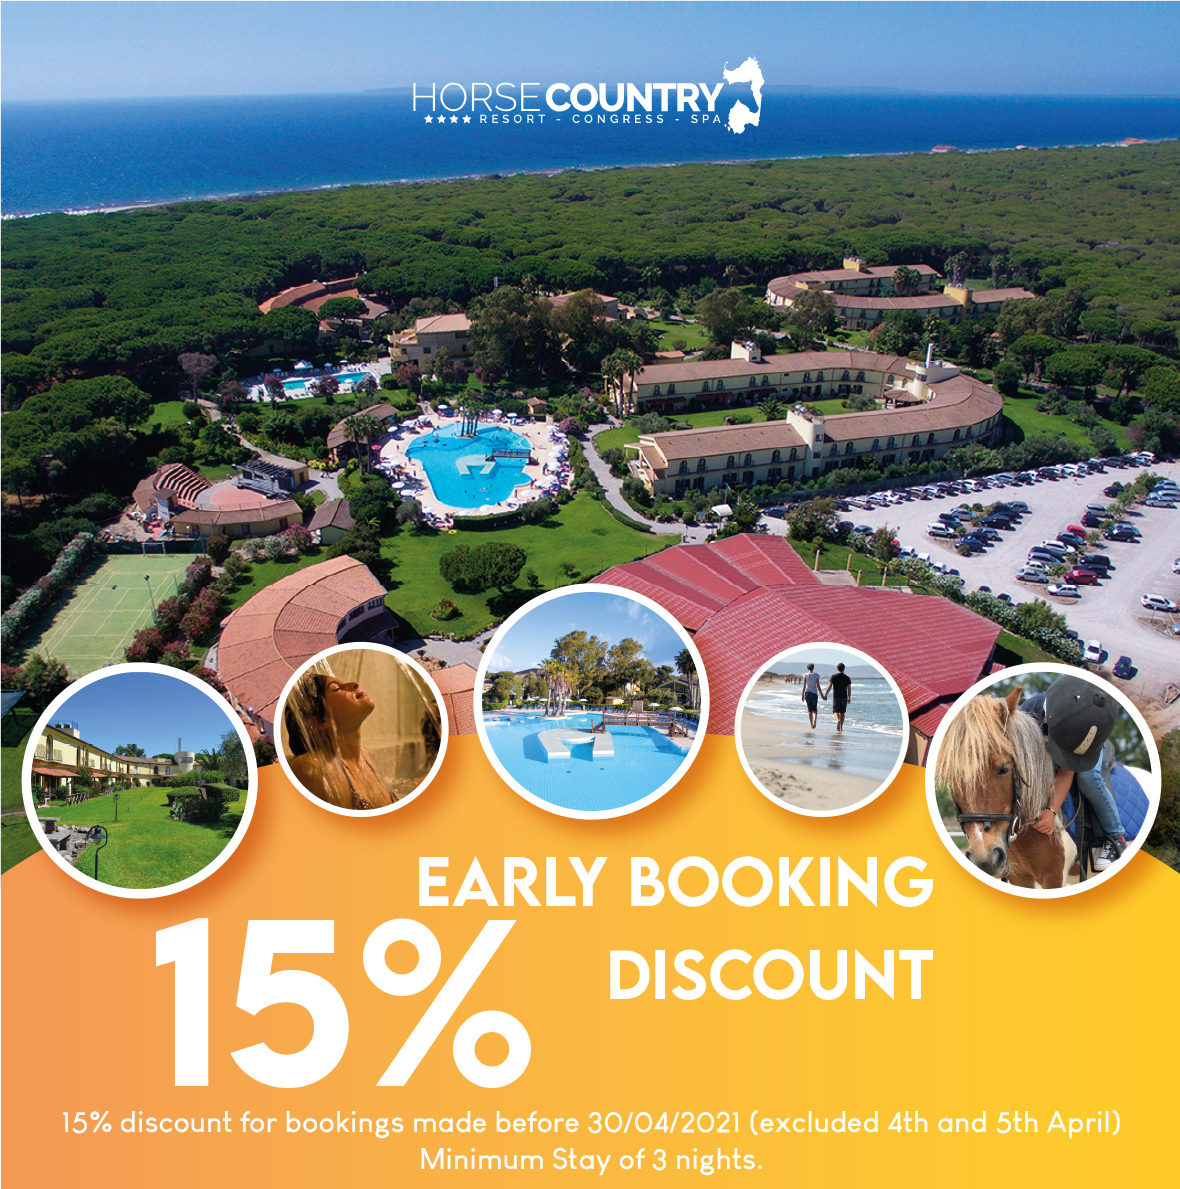 EARLY BOOKING 15% DISCOUNT